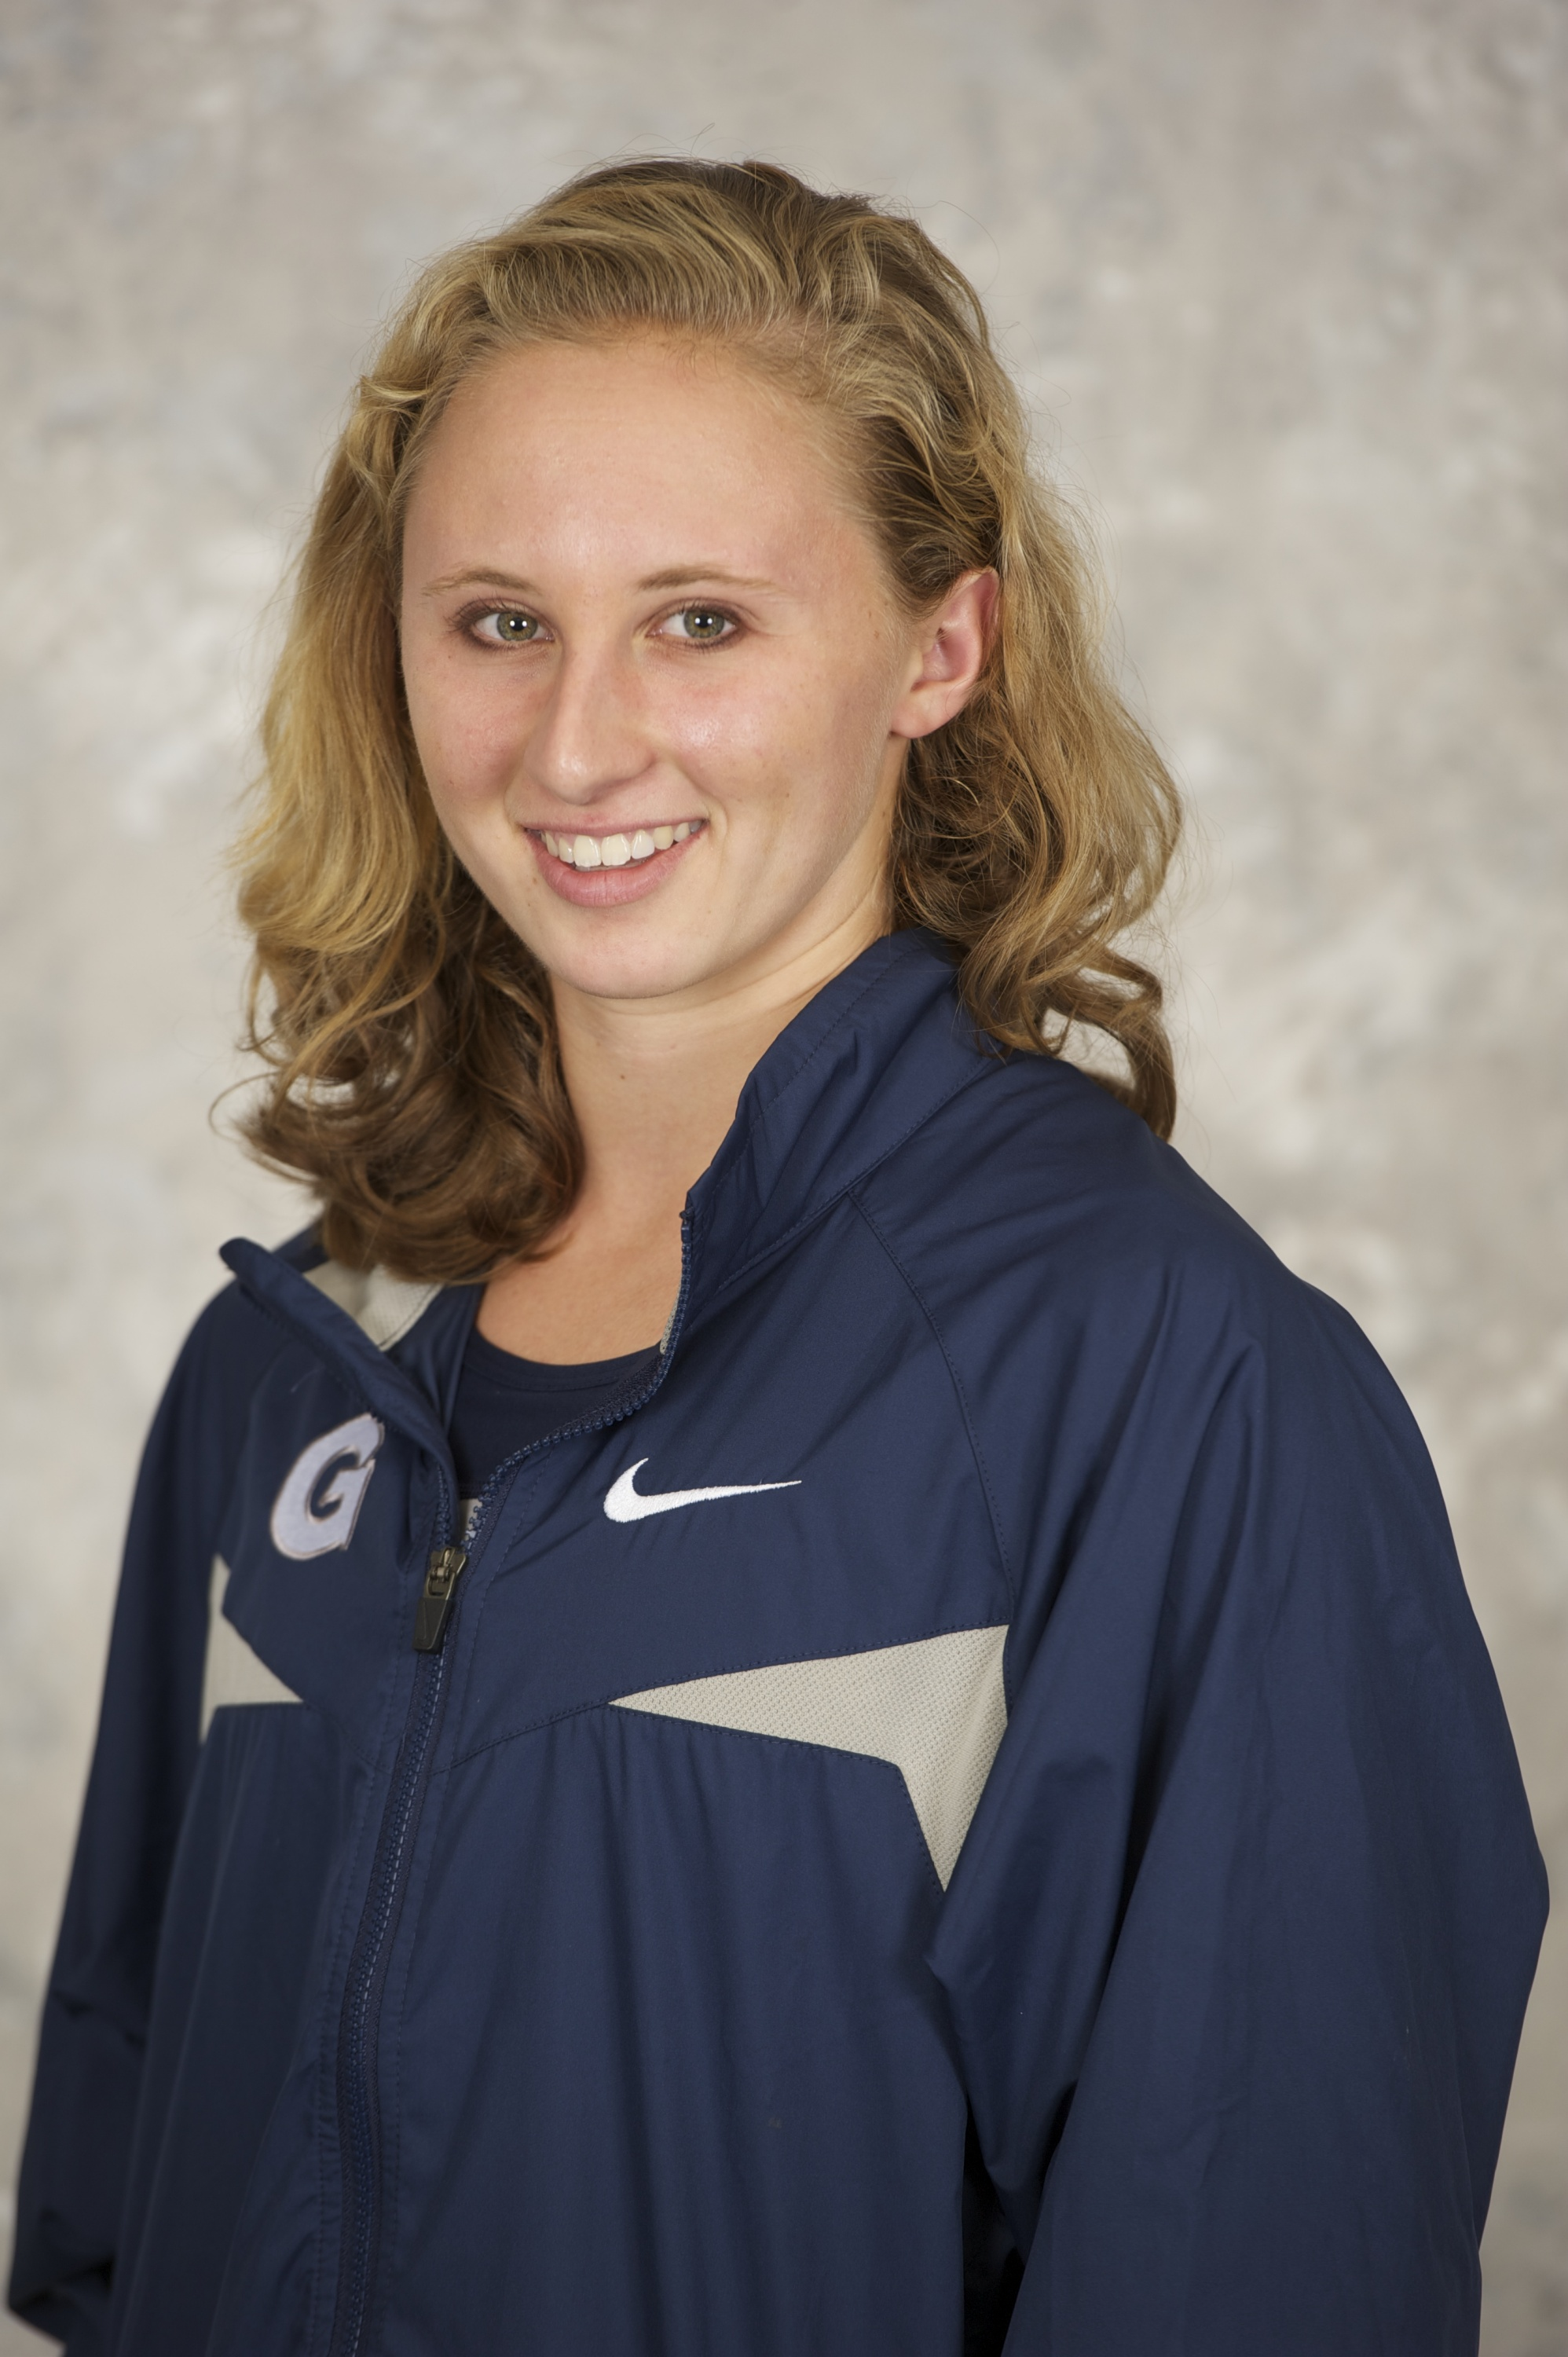 Andrea Keklak picked up her second BIG EAST weekly track honor on Tuesday.